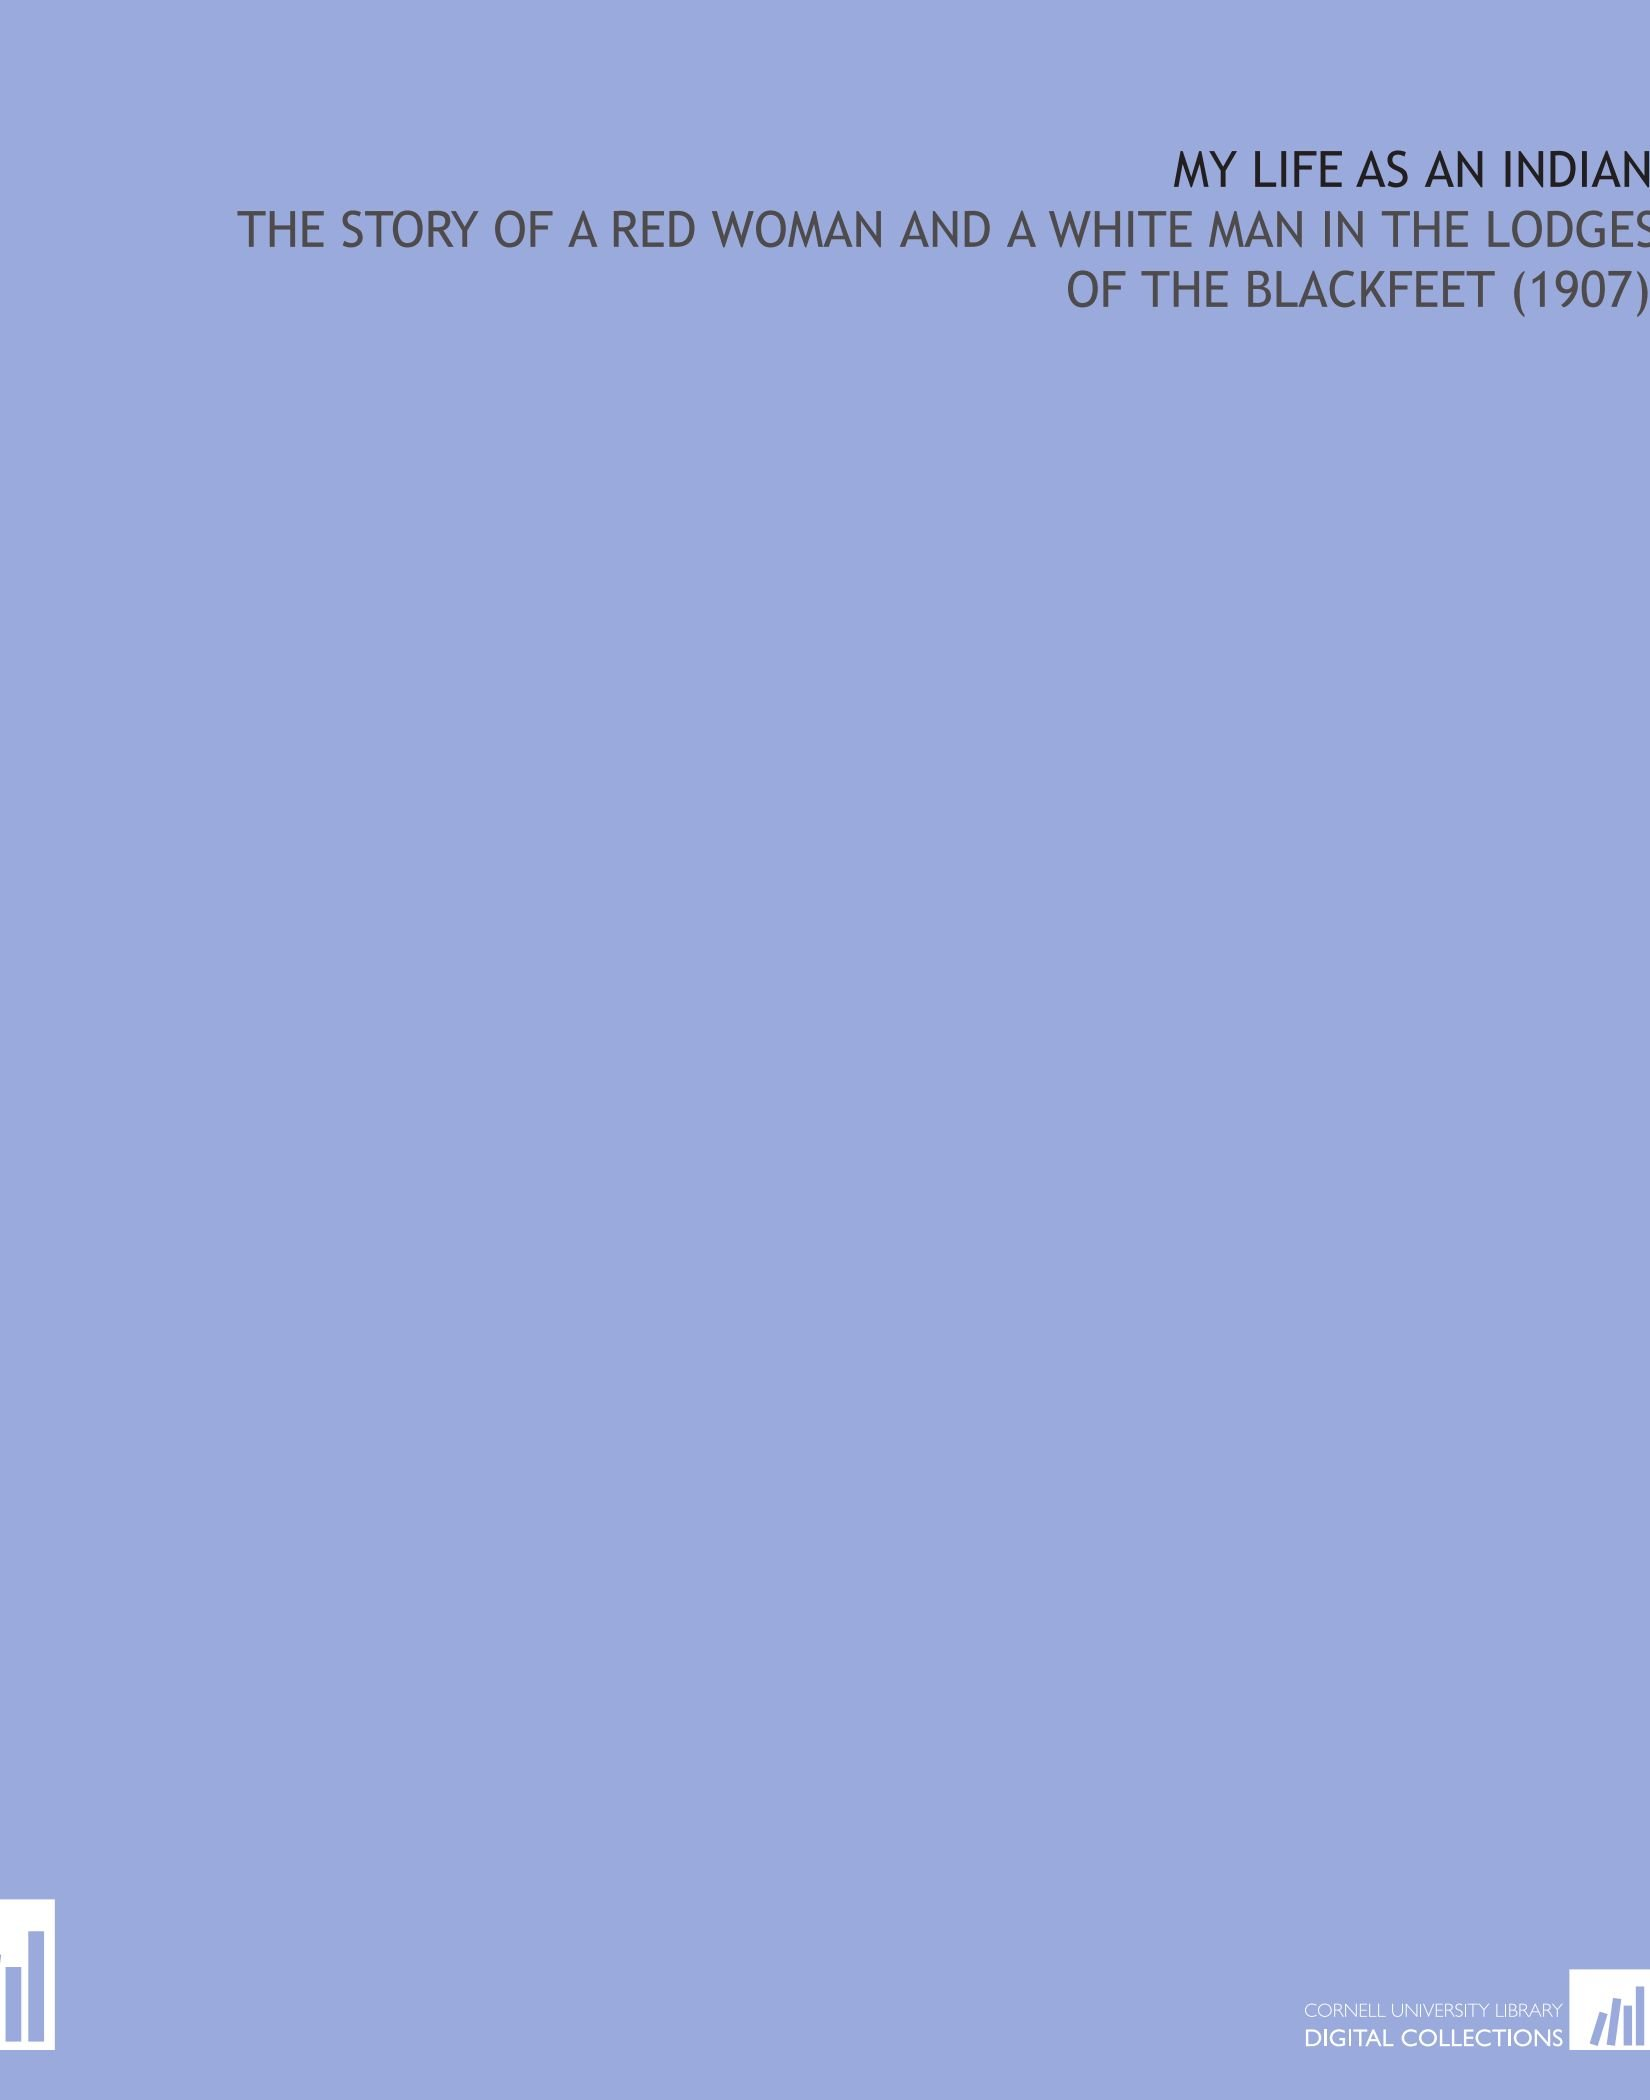 Download My Life As an Indian: The Story of a Red Woman and a White Man in the Lodges of the Blackfeet (1907) ebook